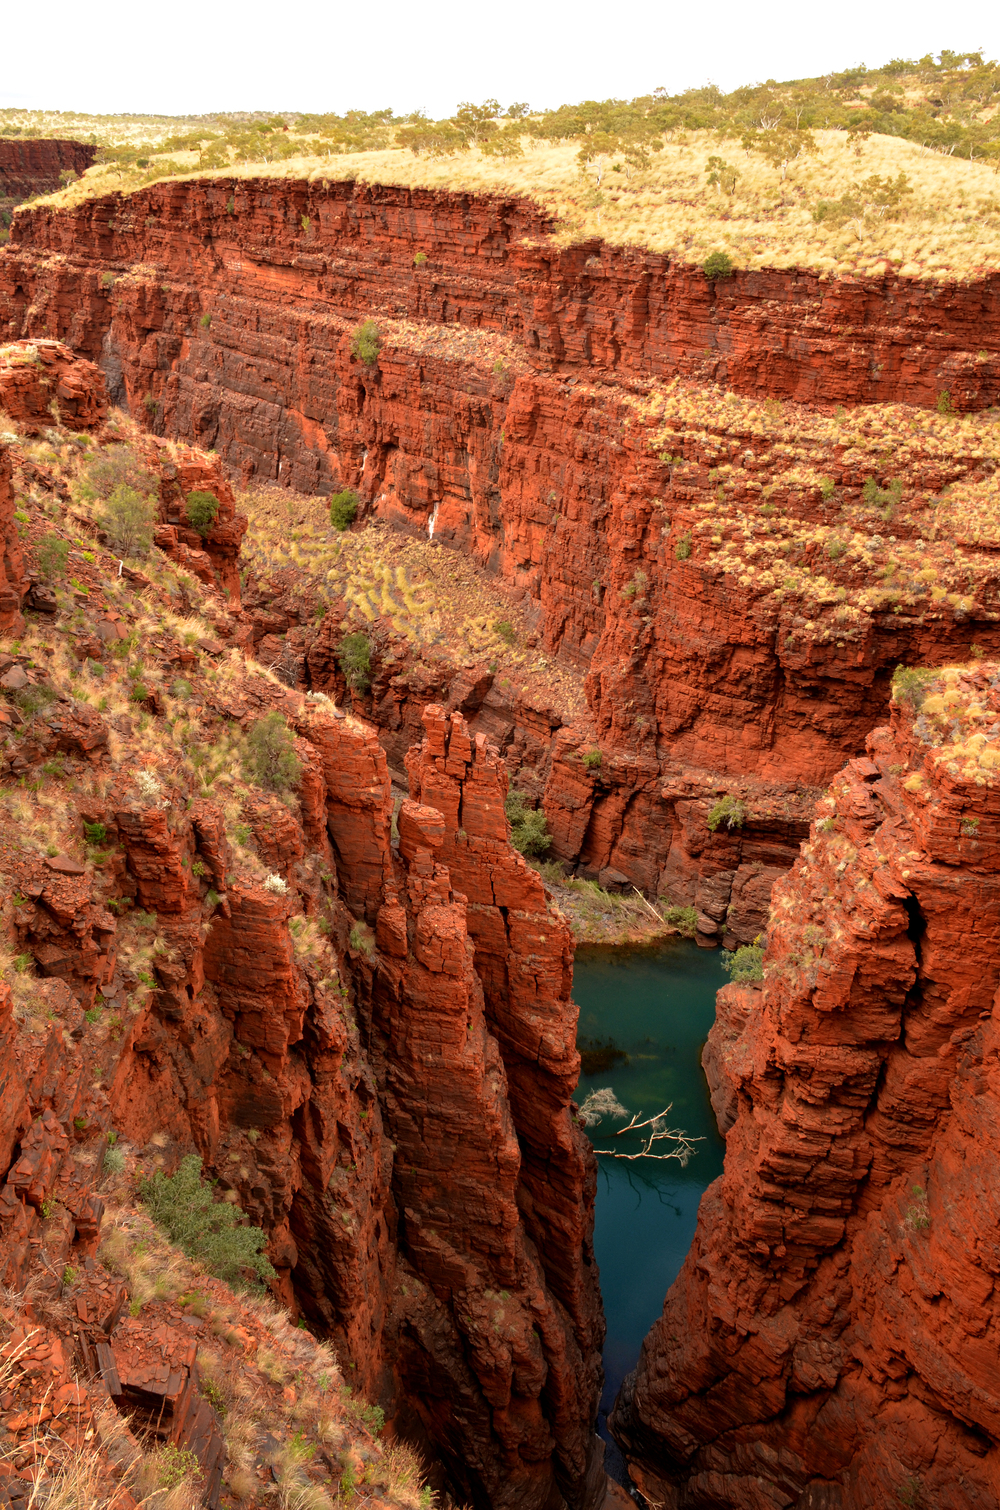 The canyons of Karijini